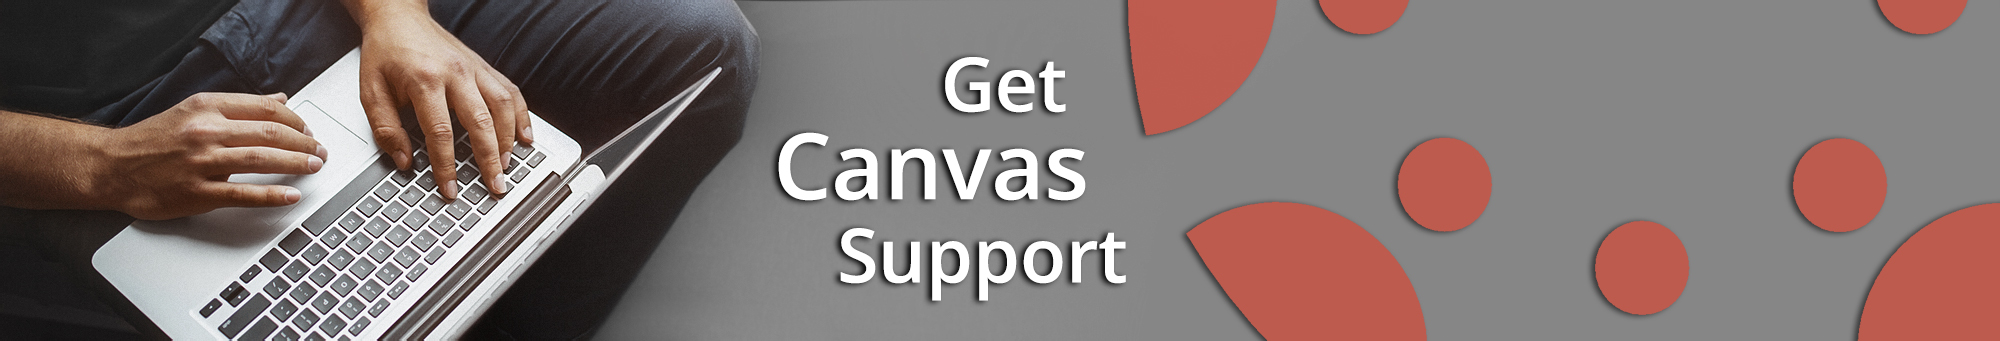 canvas help banner with laptop and logo